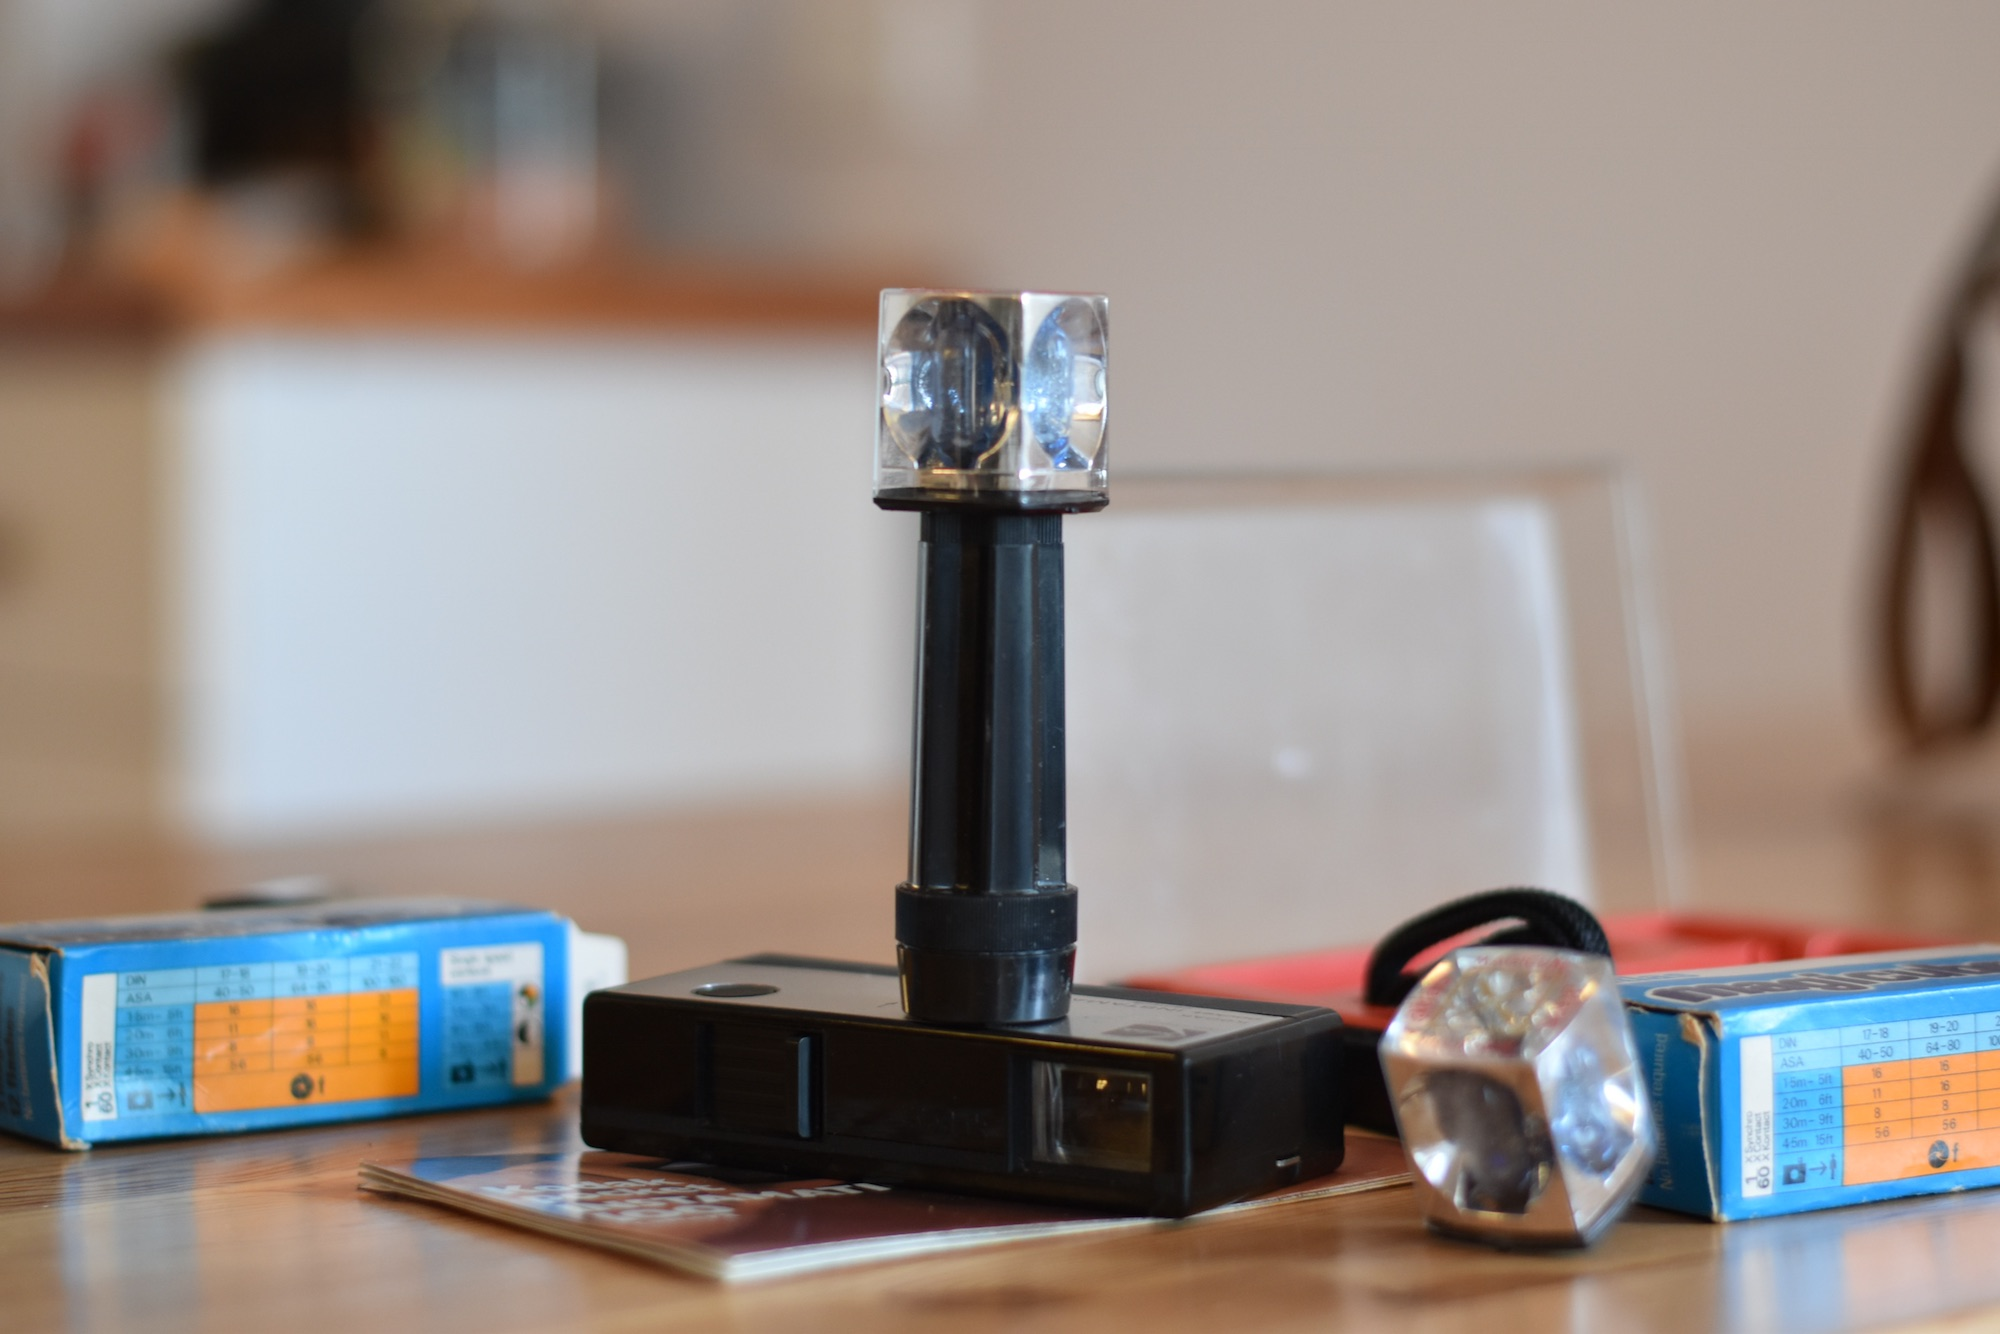 Magicube flash unit with four single-use flash bulbs. Attached to camera directly or with provided extension pole. Magicube is small and silver with a clear plastic cover, two boxes of Magicubes are shown in the background